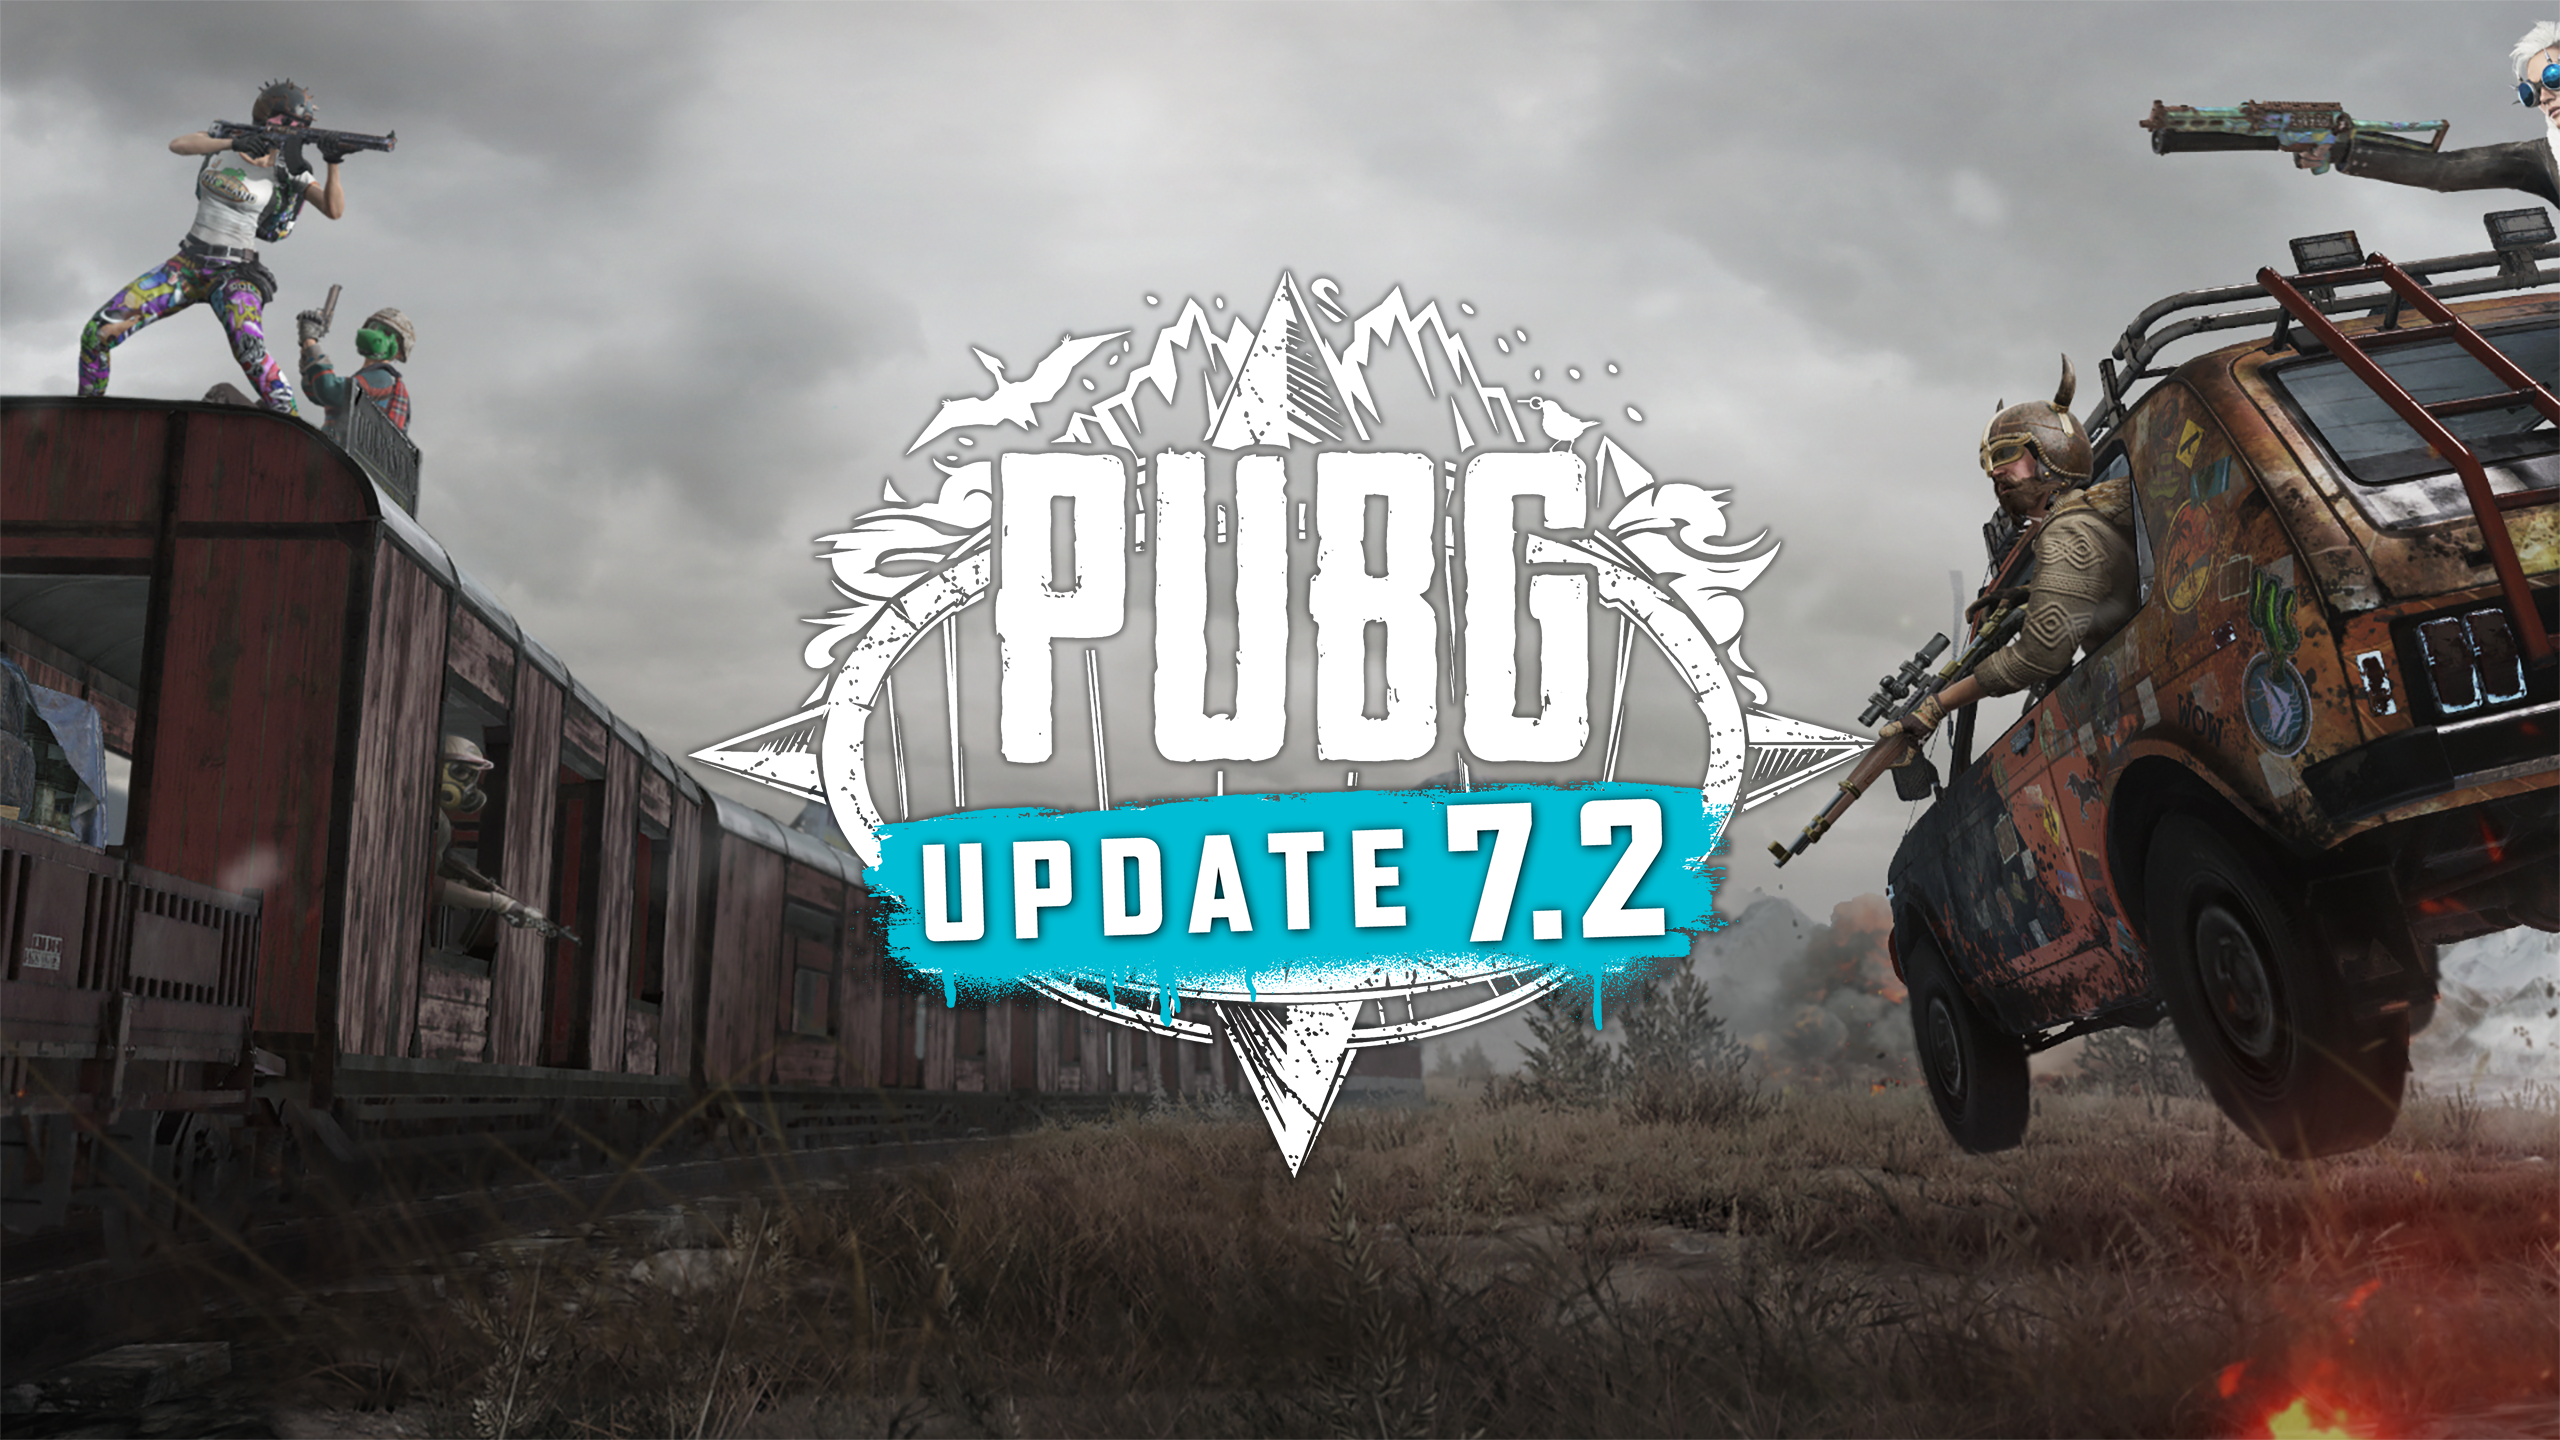 pubg pc update 7 2 is now live ranked mode explained in new dev letter pubg pc update 7 2 is now live ranked